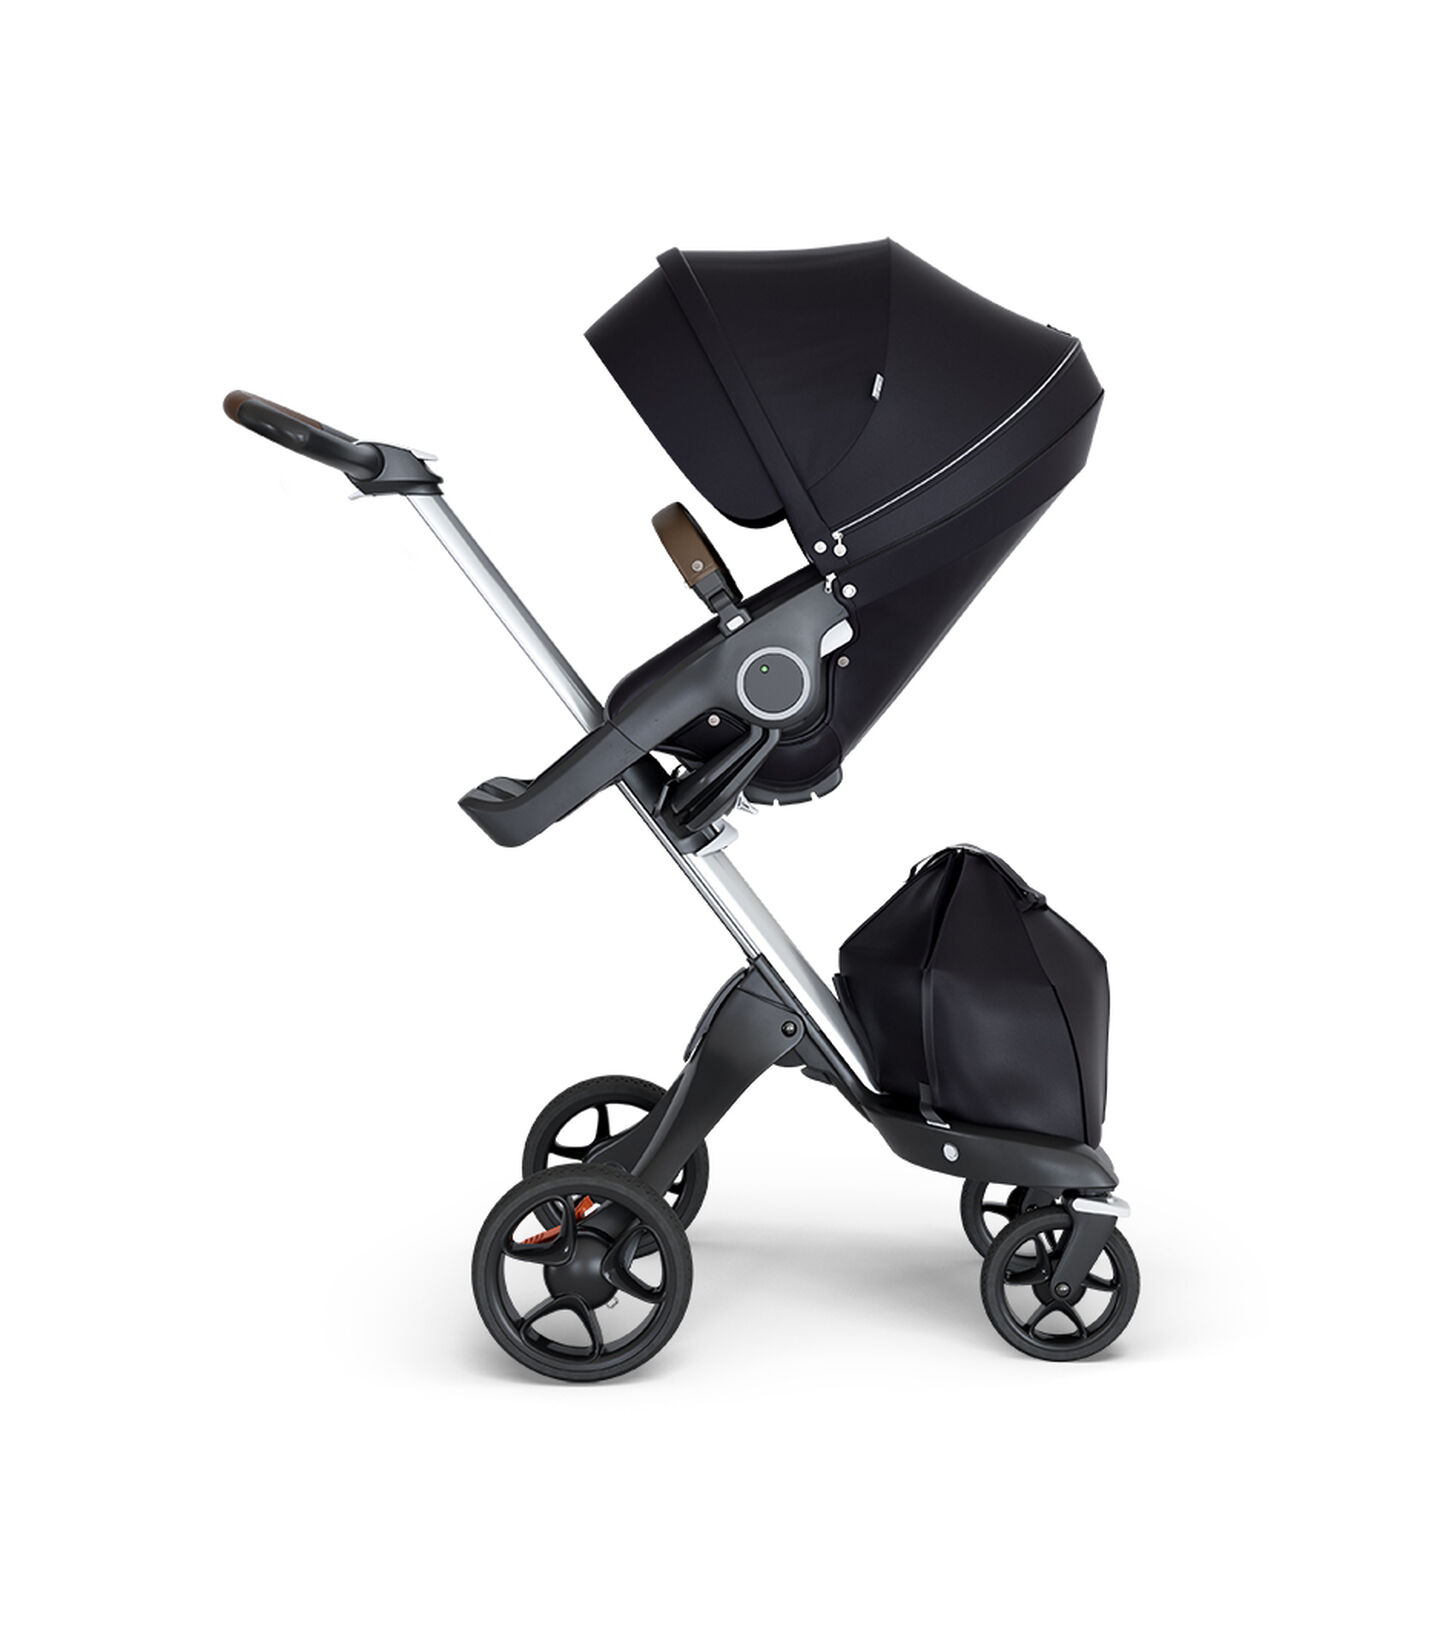 Stokke® Xplory® 6 Silver Chassis - Brown Handle Black, Negro, mainview view 2